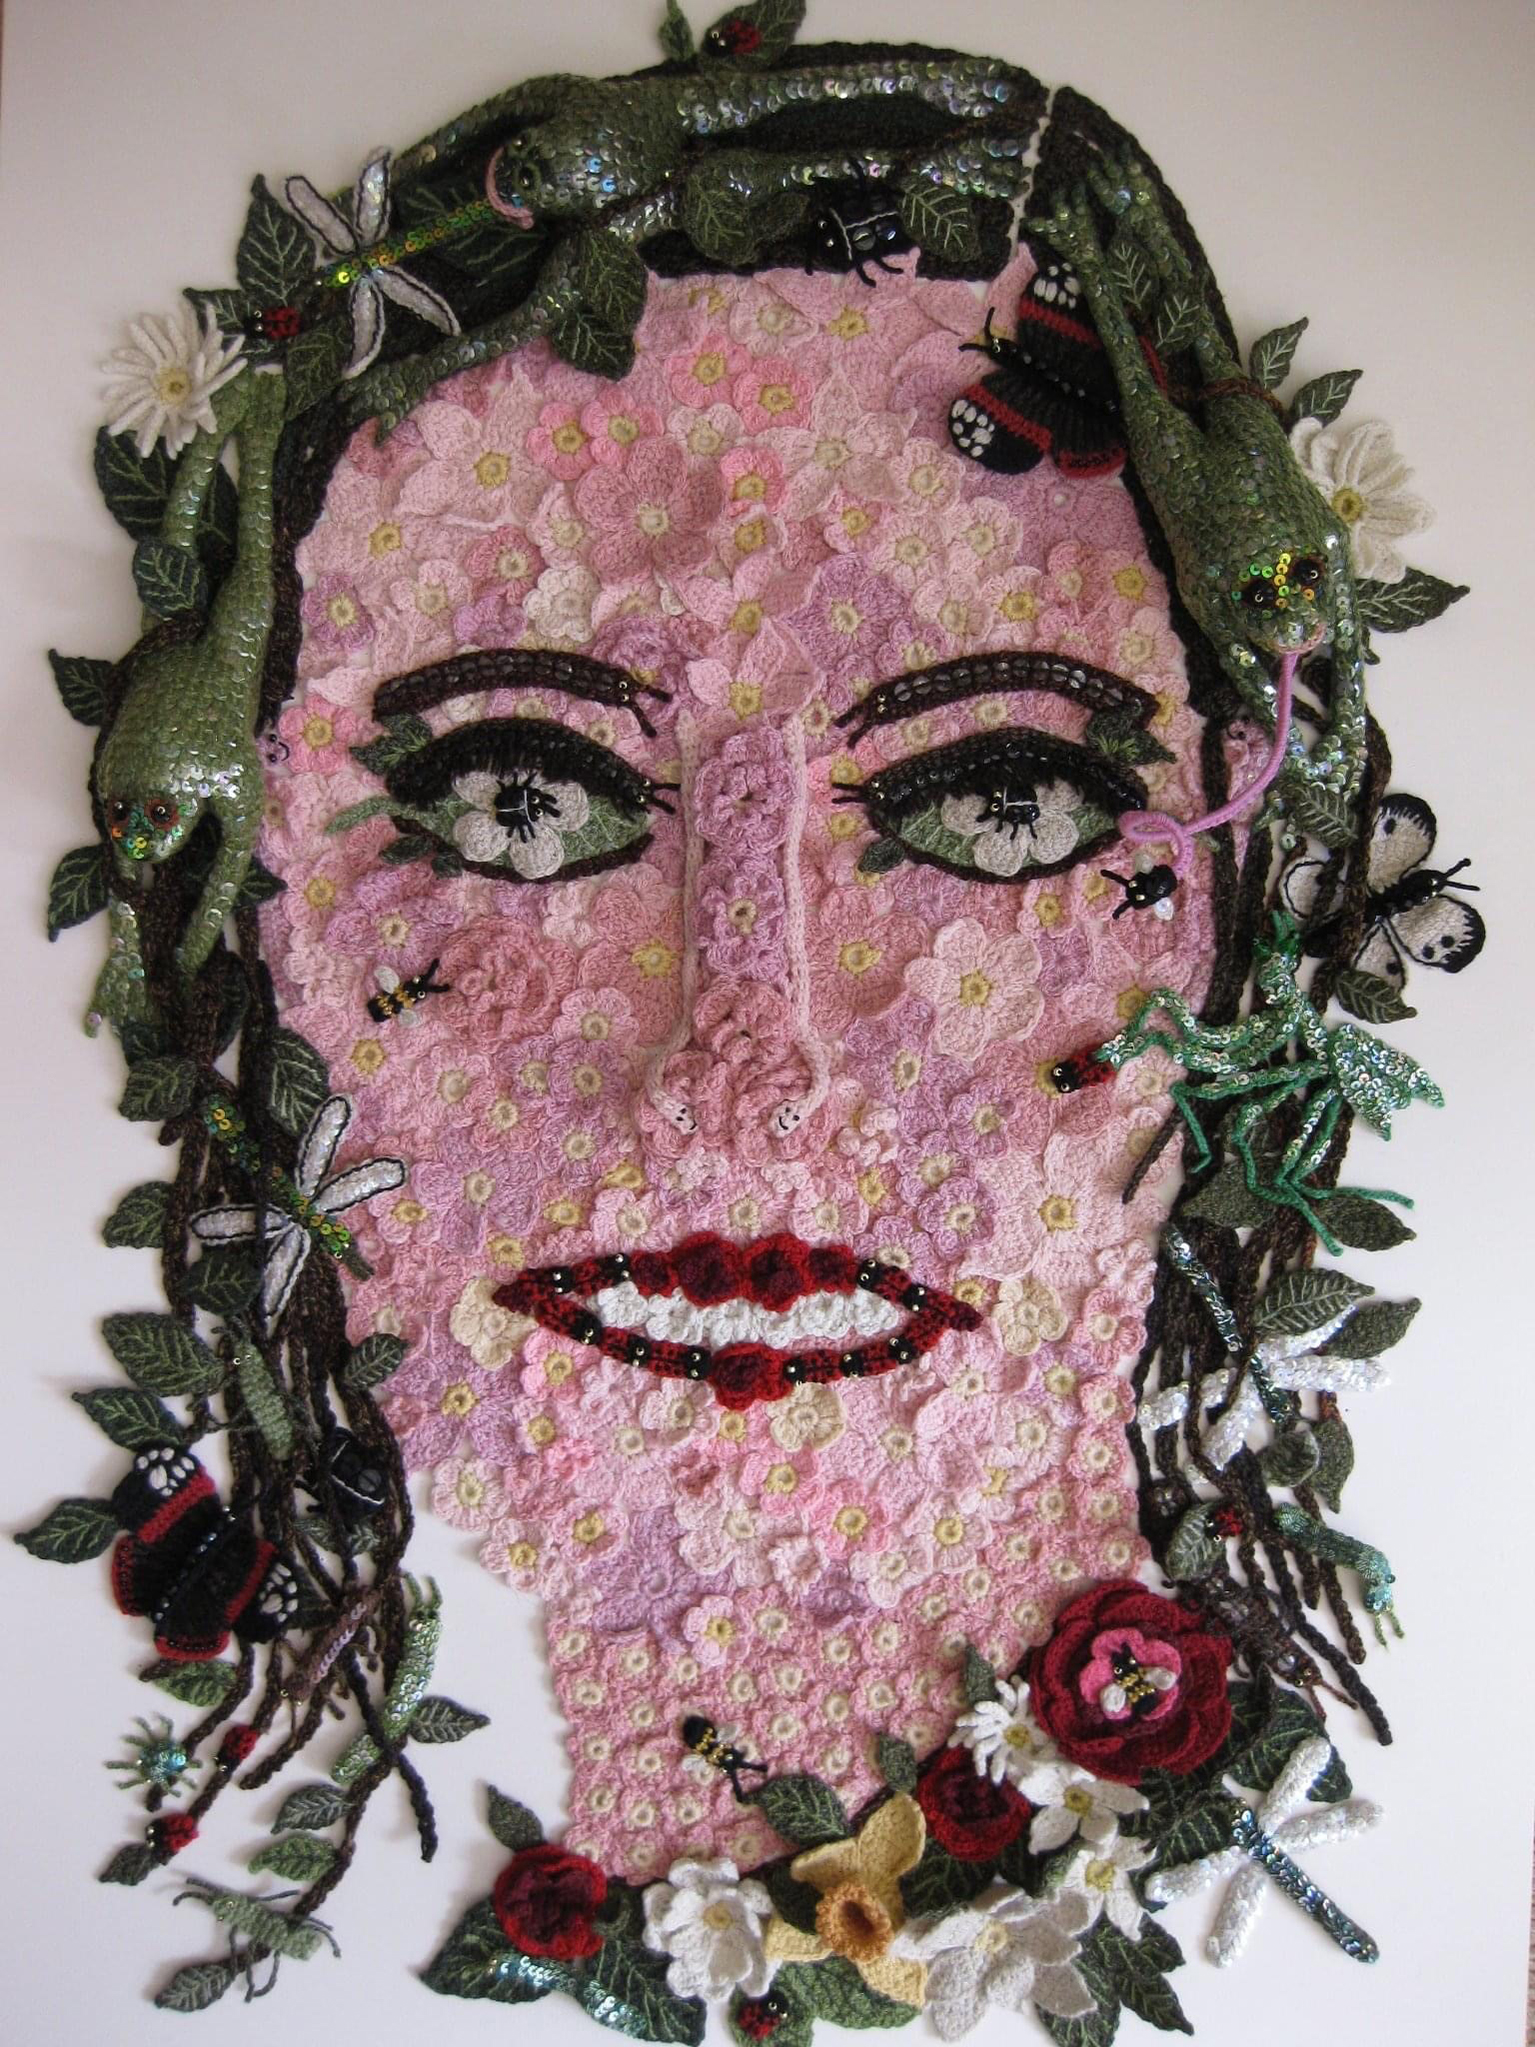 textile self portrait competition knitting and stitching show 2020